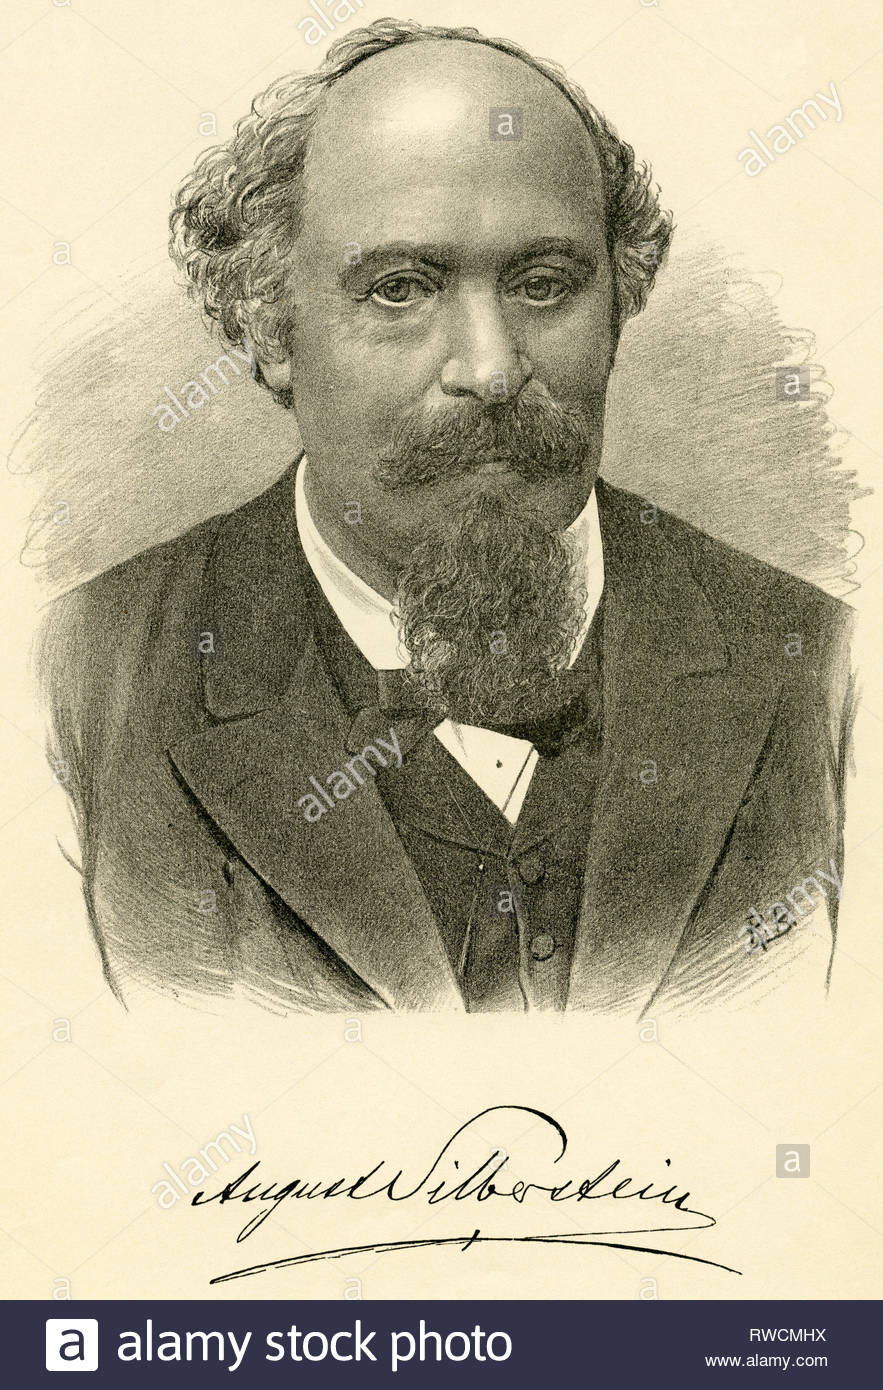 Hungary, Ofen (Budapest), August Silberstein, Austrian writer (died 1900), lithography / around 1894 / by Josef Eberle (died 1921), Lithography by Stern and Steiner, Vienna., Artist's Copyright must also be cleared - Stock Image